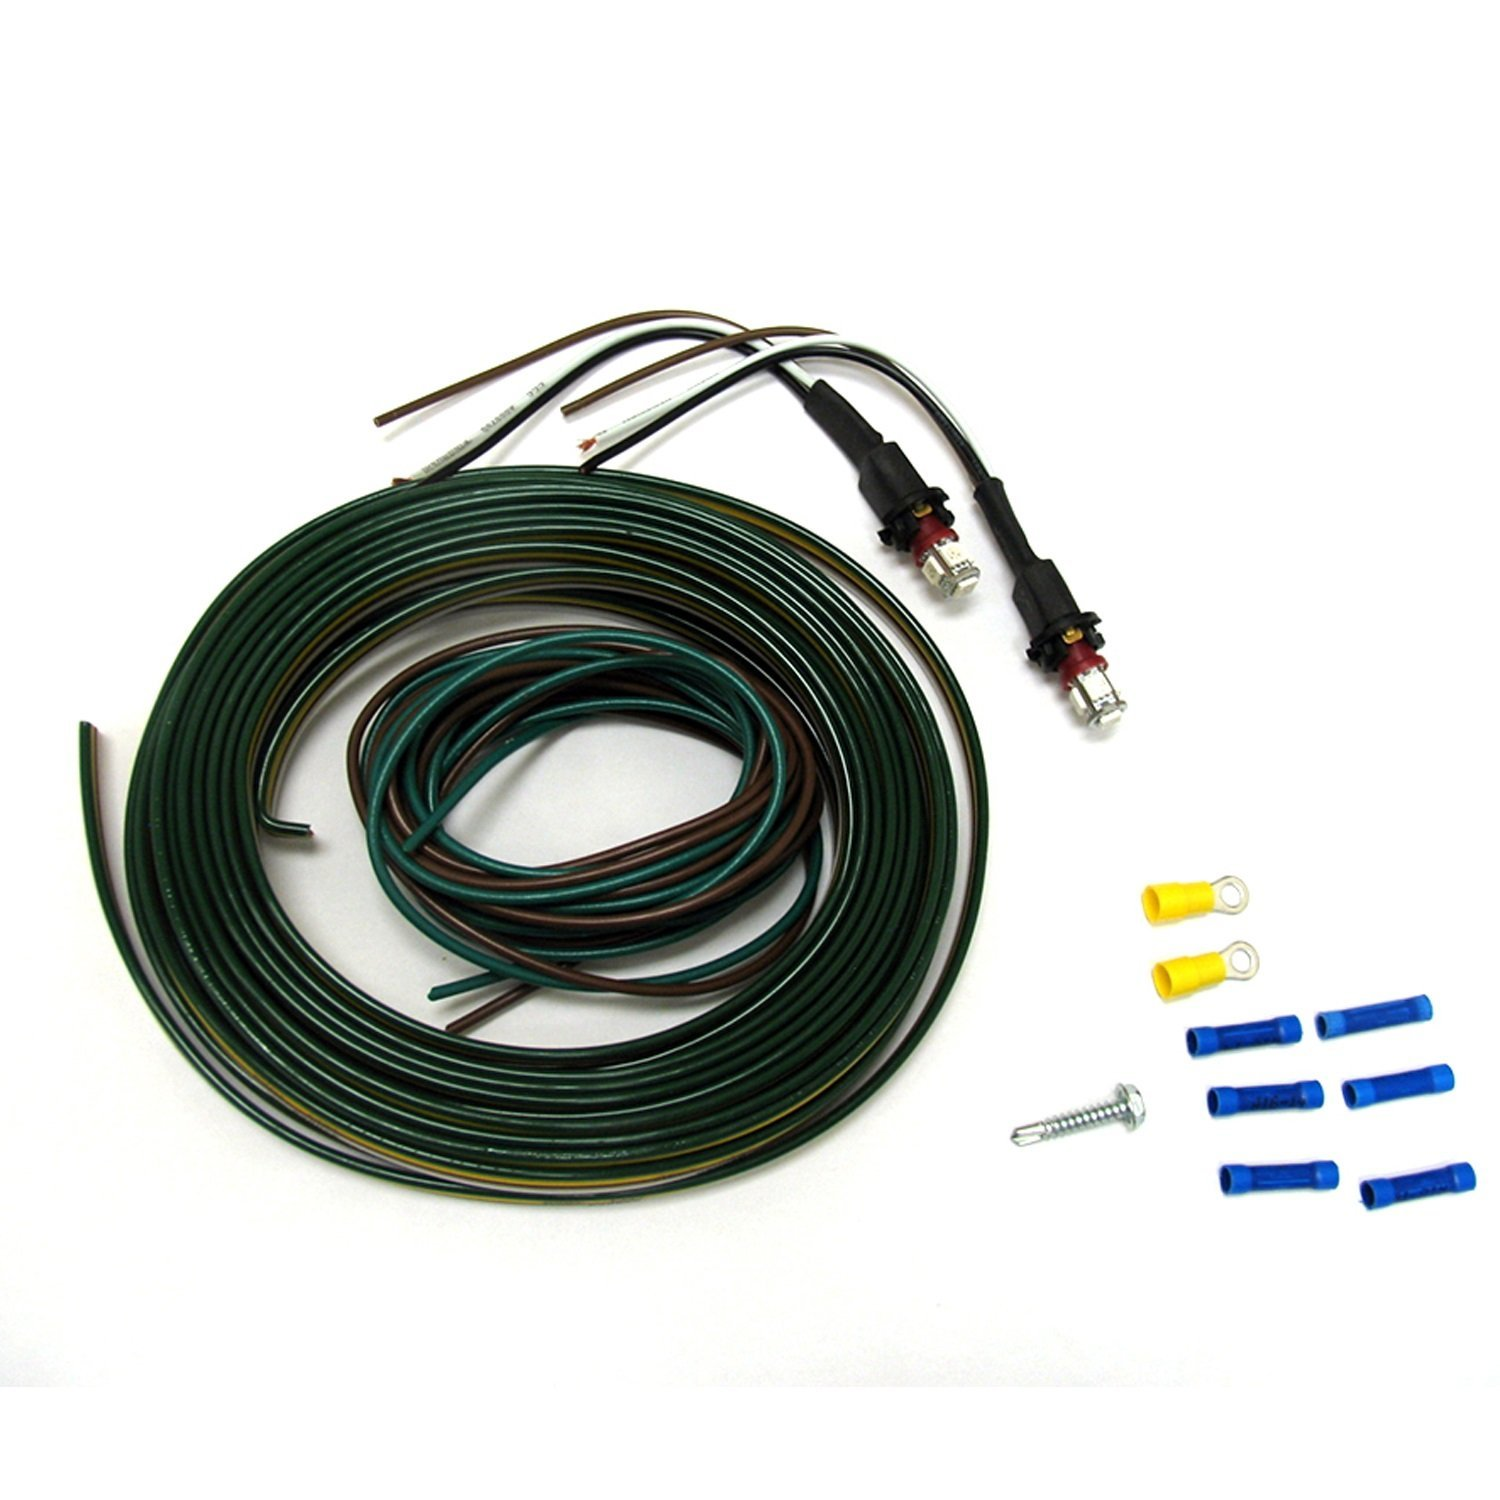 hight resolution of cheap light bulb wiring find light bulb wiring deals on line at blue ox wiring